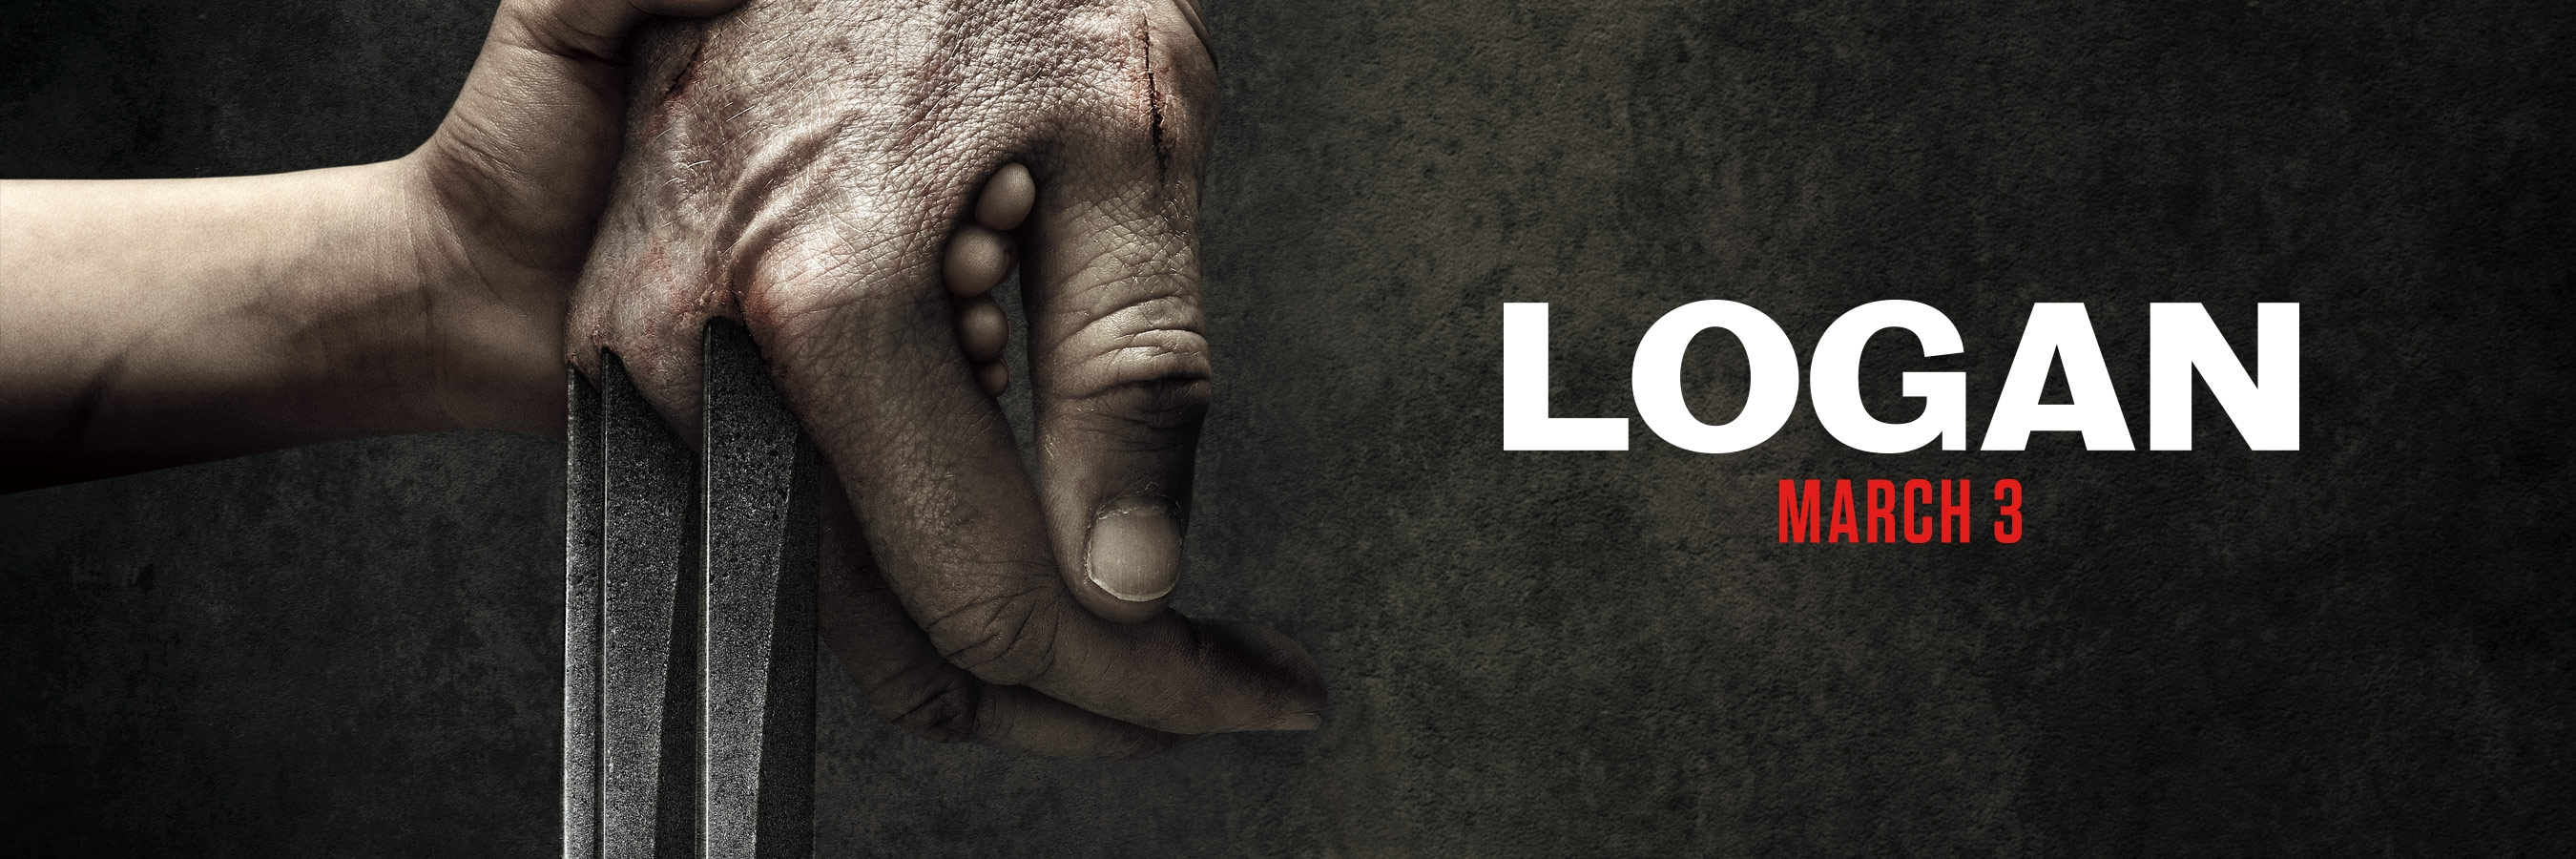 Logan 2017 Movie